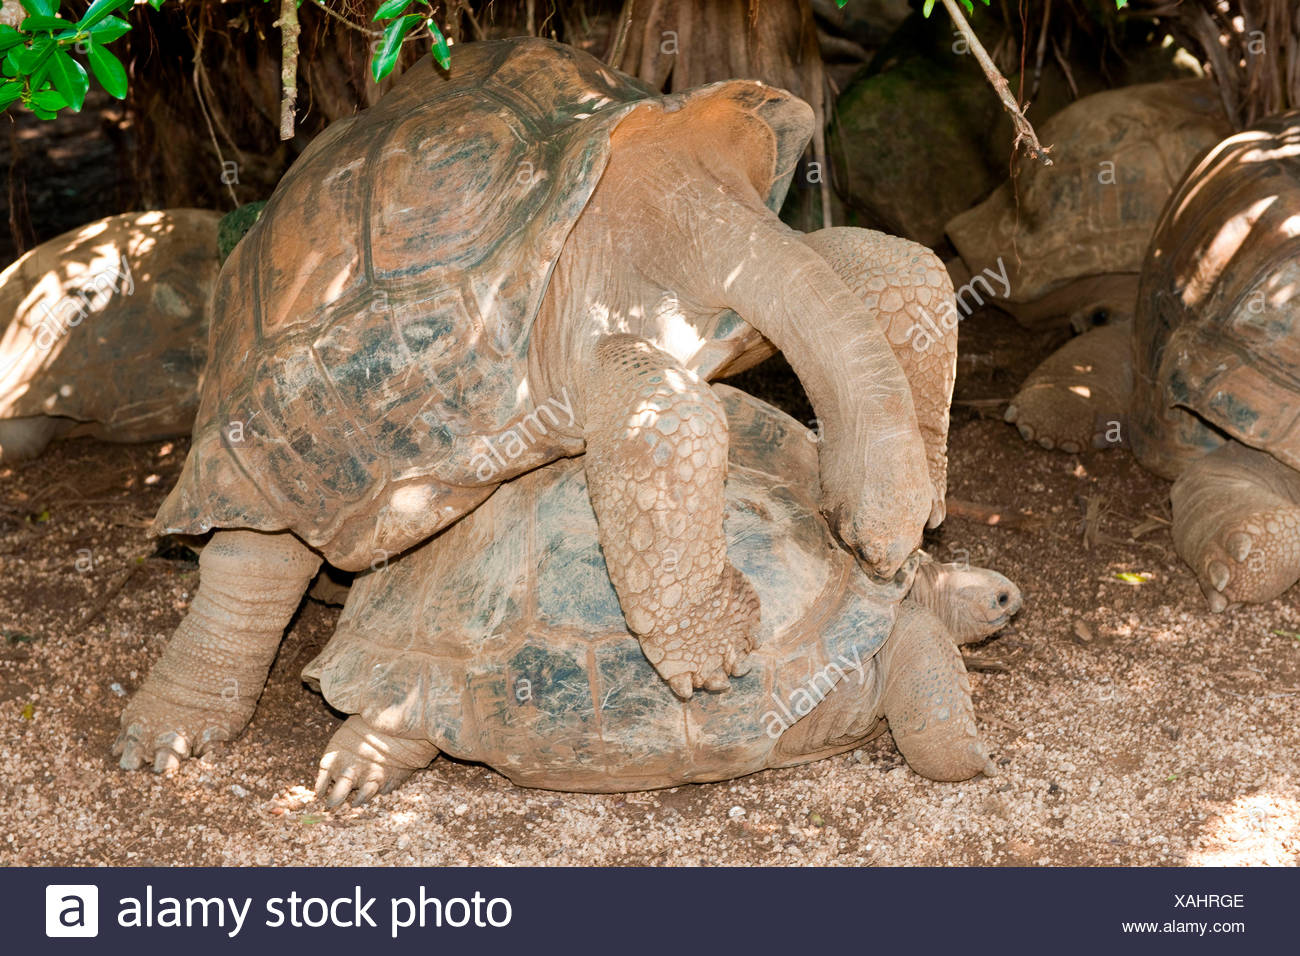 Aldabra giant tortoise, mating, Mauritius, Africa, Indian Ocean /  (Aldabrachelys gigantea) Stock Photo